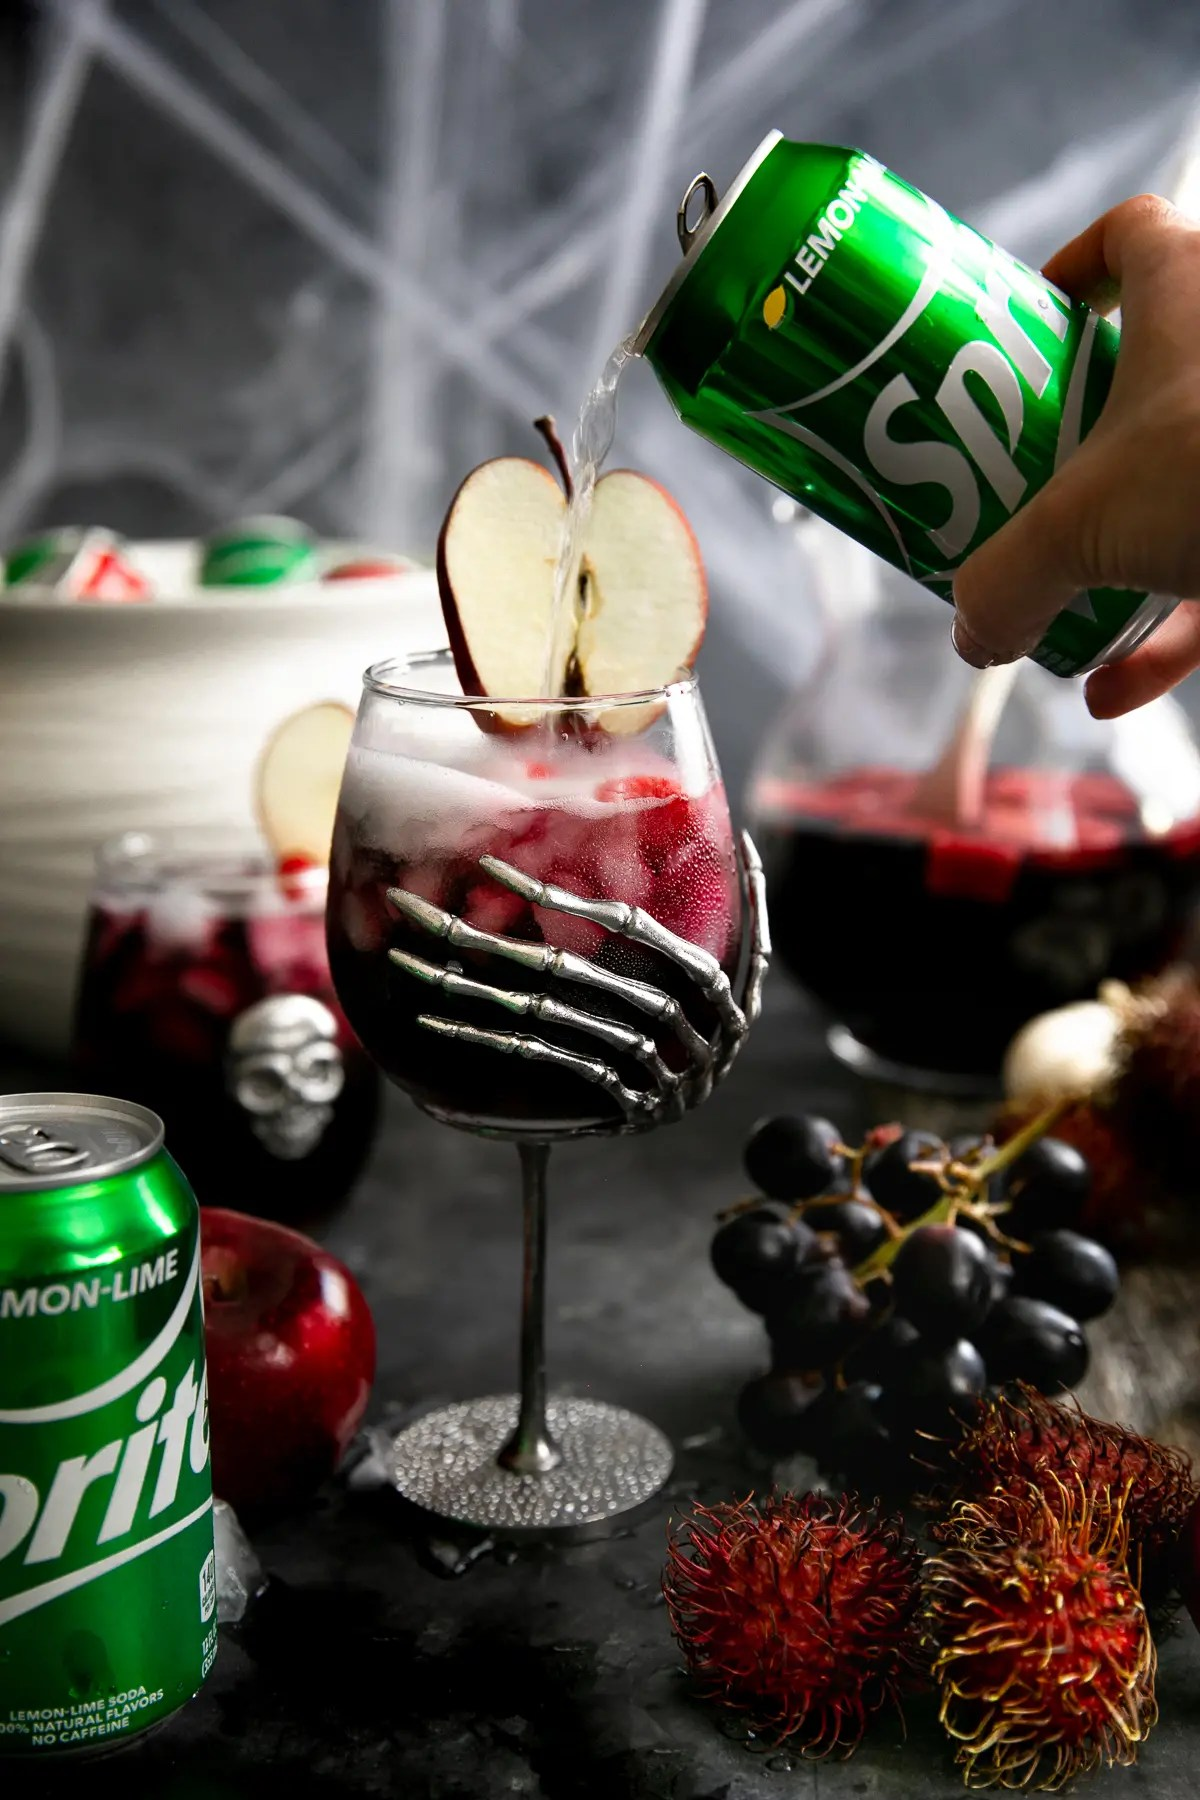 Sprite being poured into a large Halloween wine goblet filled with red sangria.